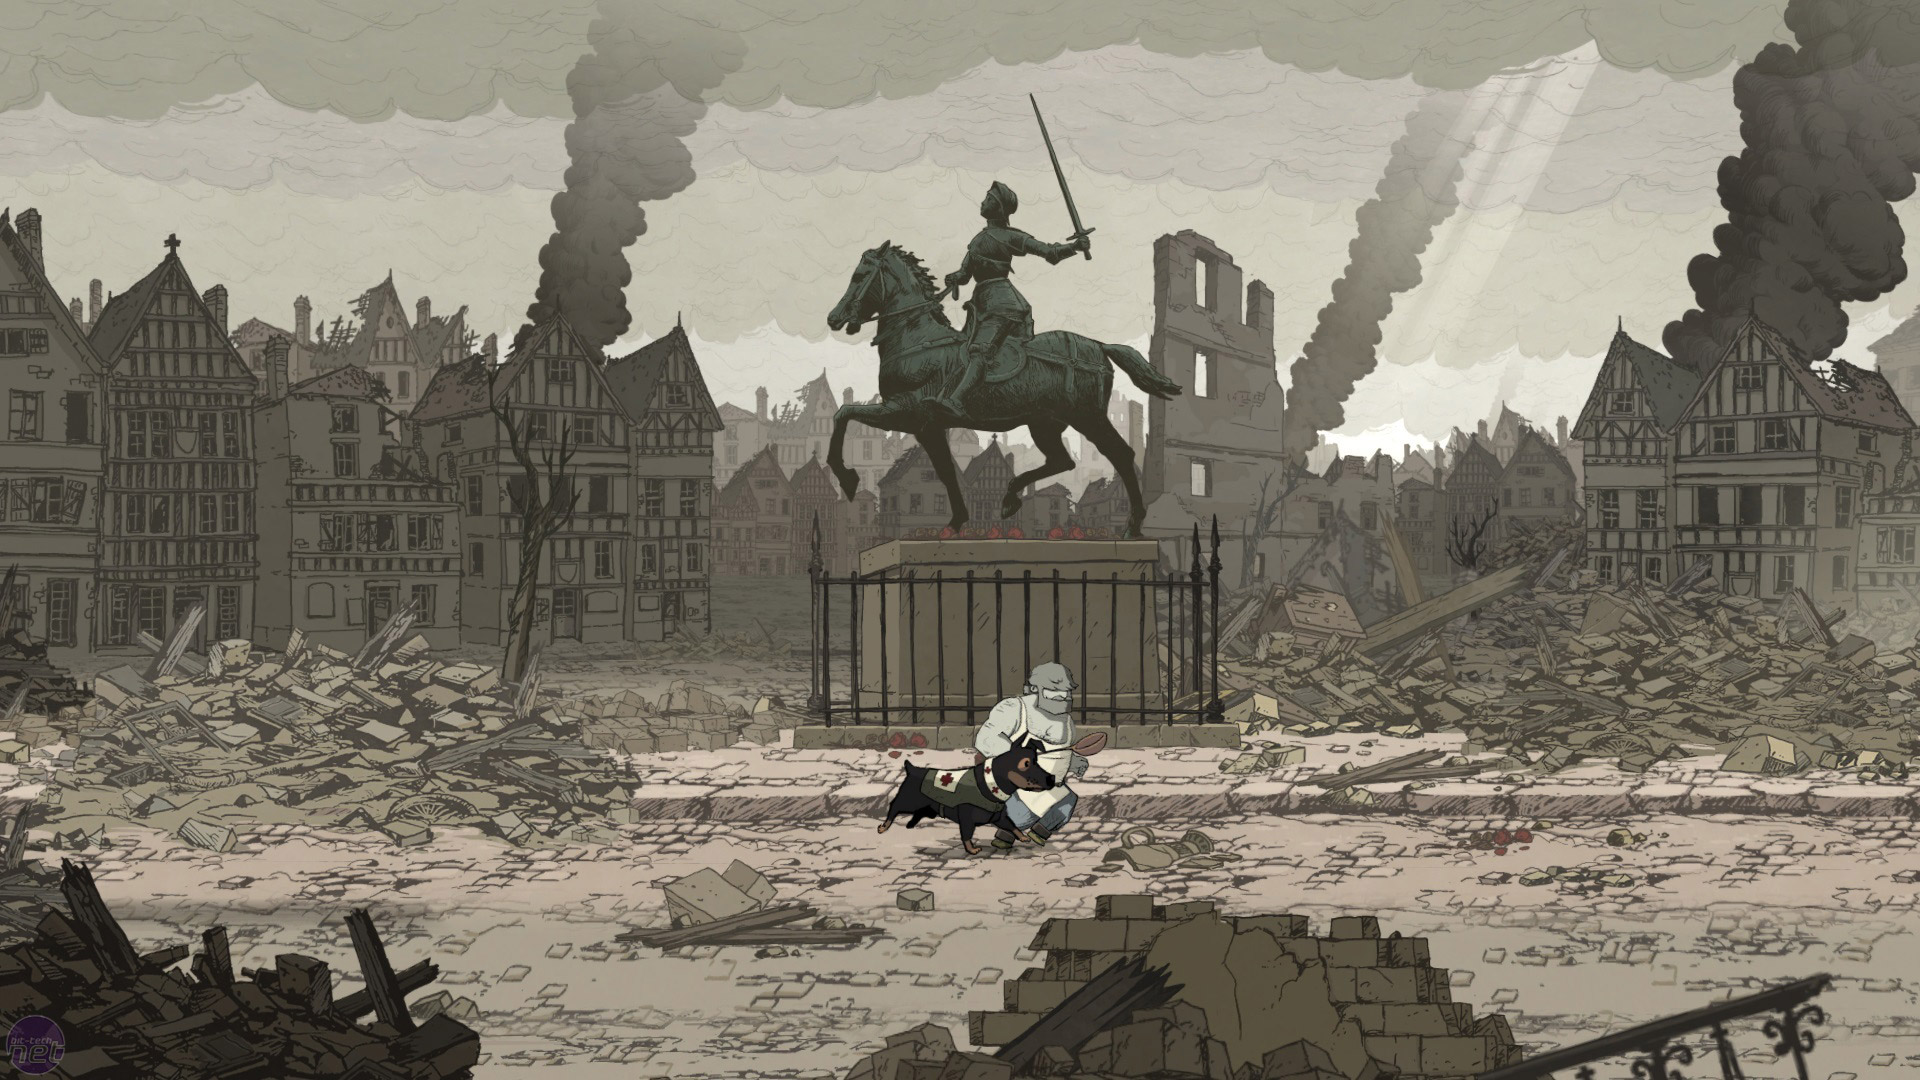 Free Valiant Hearts Wallpaper in 1920x1080